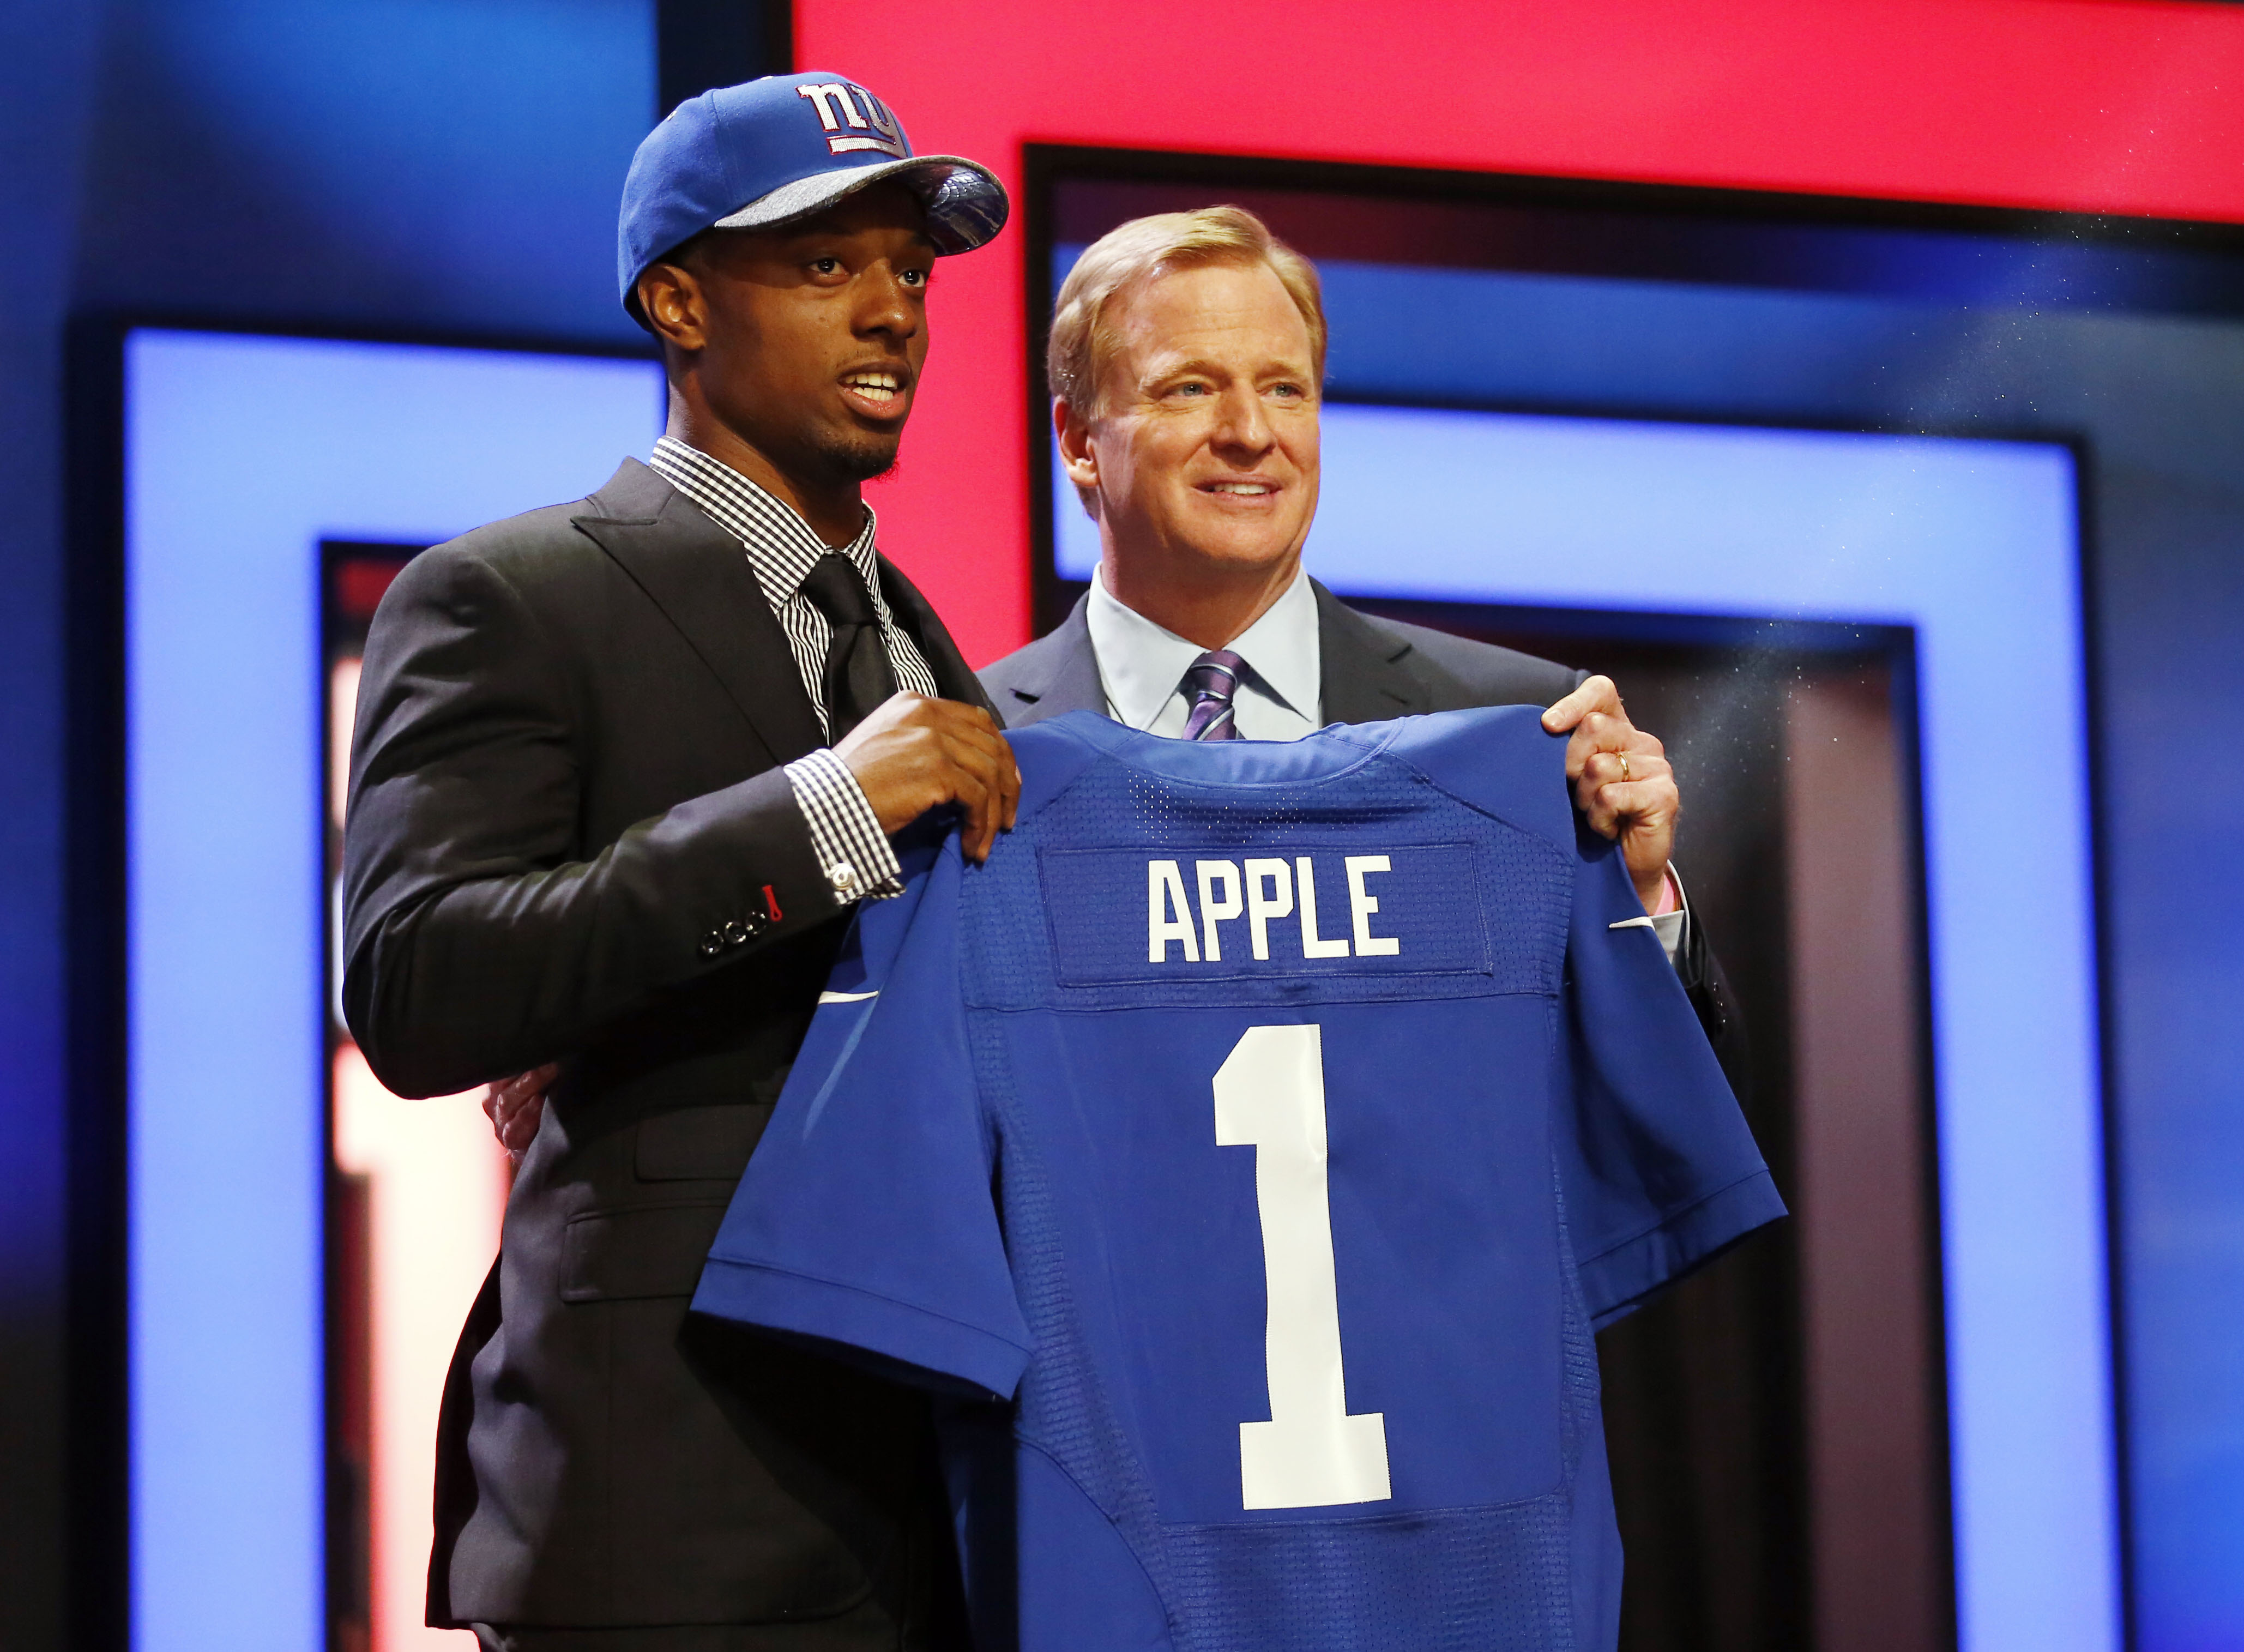 Eli Apple was the Giants' first round selection in the 2016 NFL Draft.